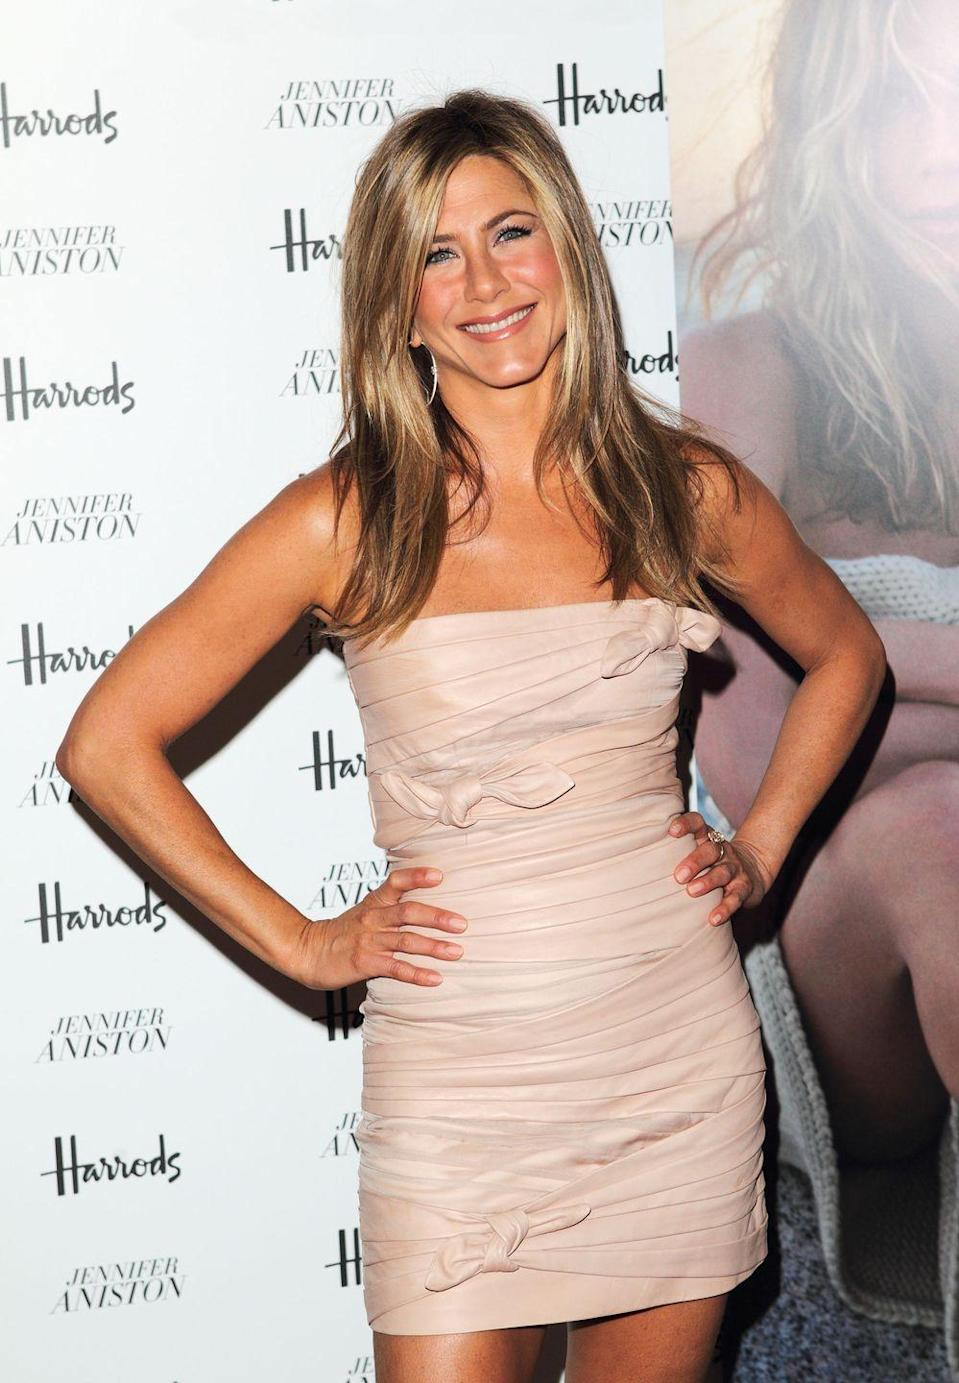 """<p>""""It's the longest workout I've actually stayed with consistently other than yoga,"""" she told <a href=""""https://www.instyle.com/news/jennifer-aniston-september-cover"""" rel=""""nofollow noopener"""" target=""""_blank"""" data-ylk=""""slk:InStyle"""" class=""""link rapid-noclick-resp"""">InStyle</a>. """"There's something about the mental aspect of boxing—the drills, your brain has to work, you're not just sitting on a bike. It's amazing.""""</p>"""